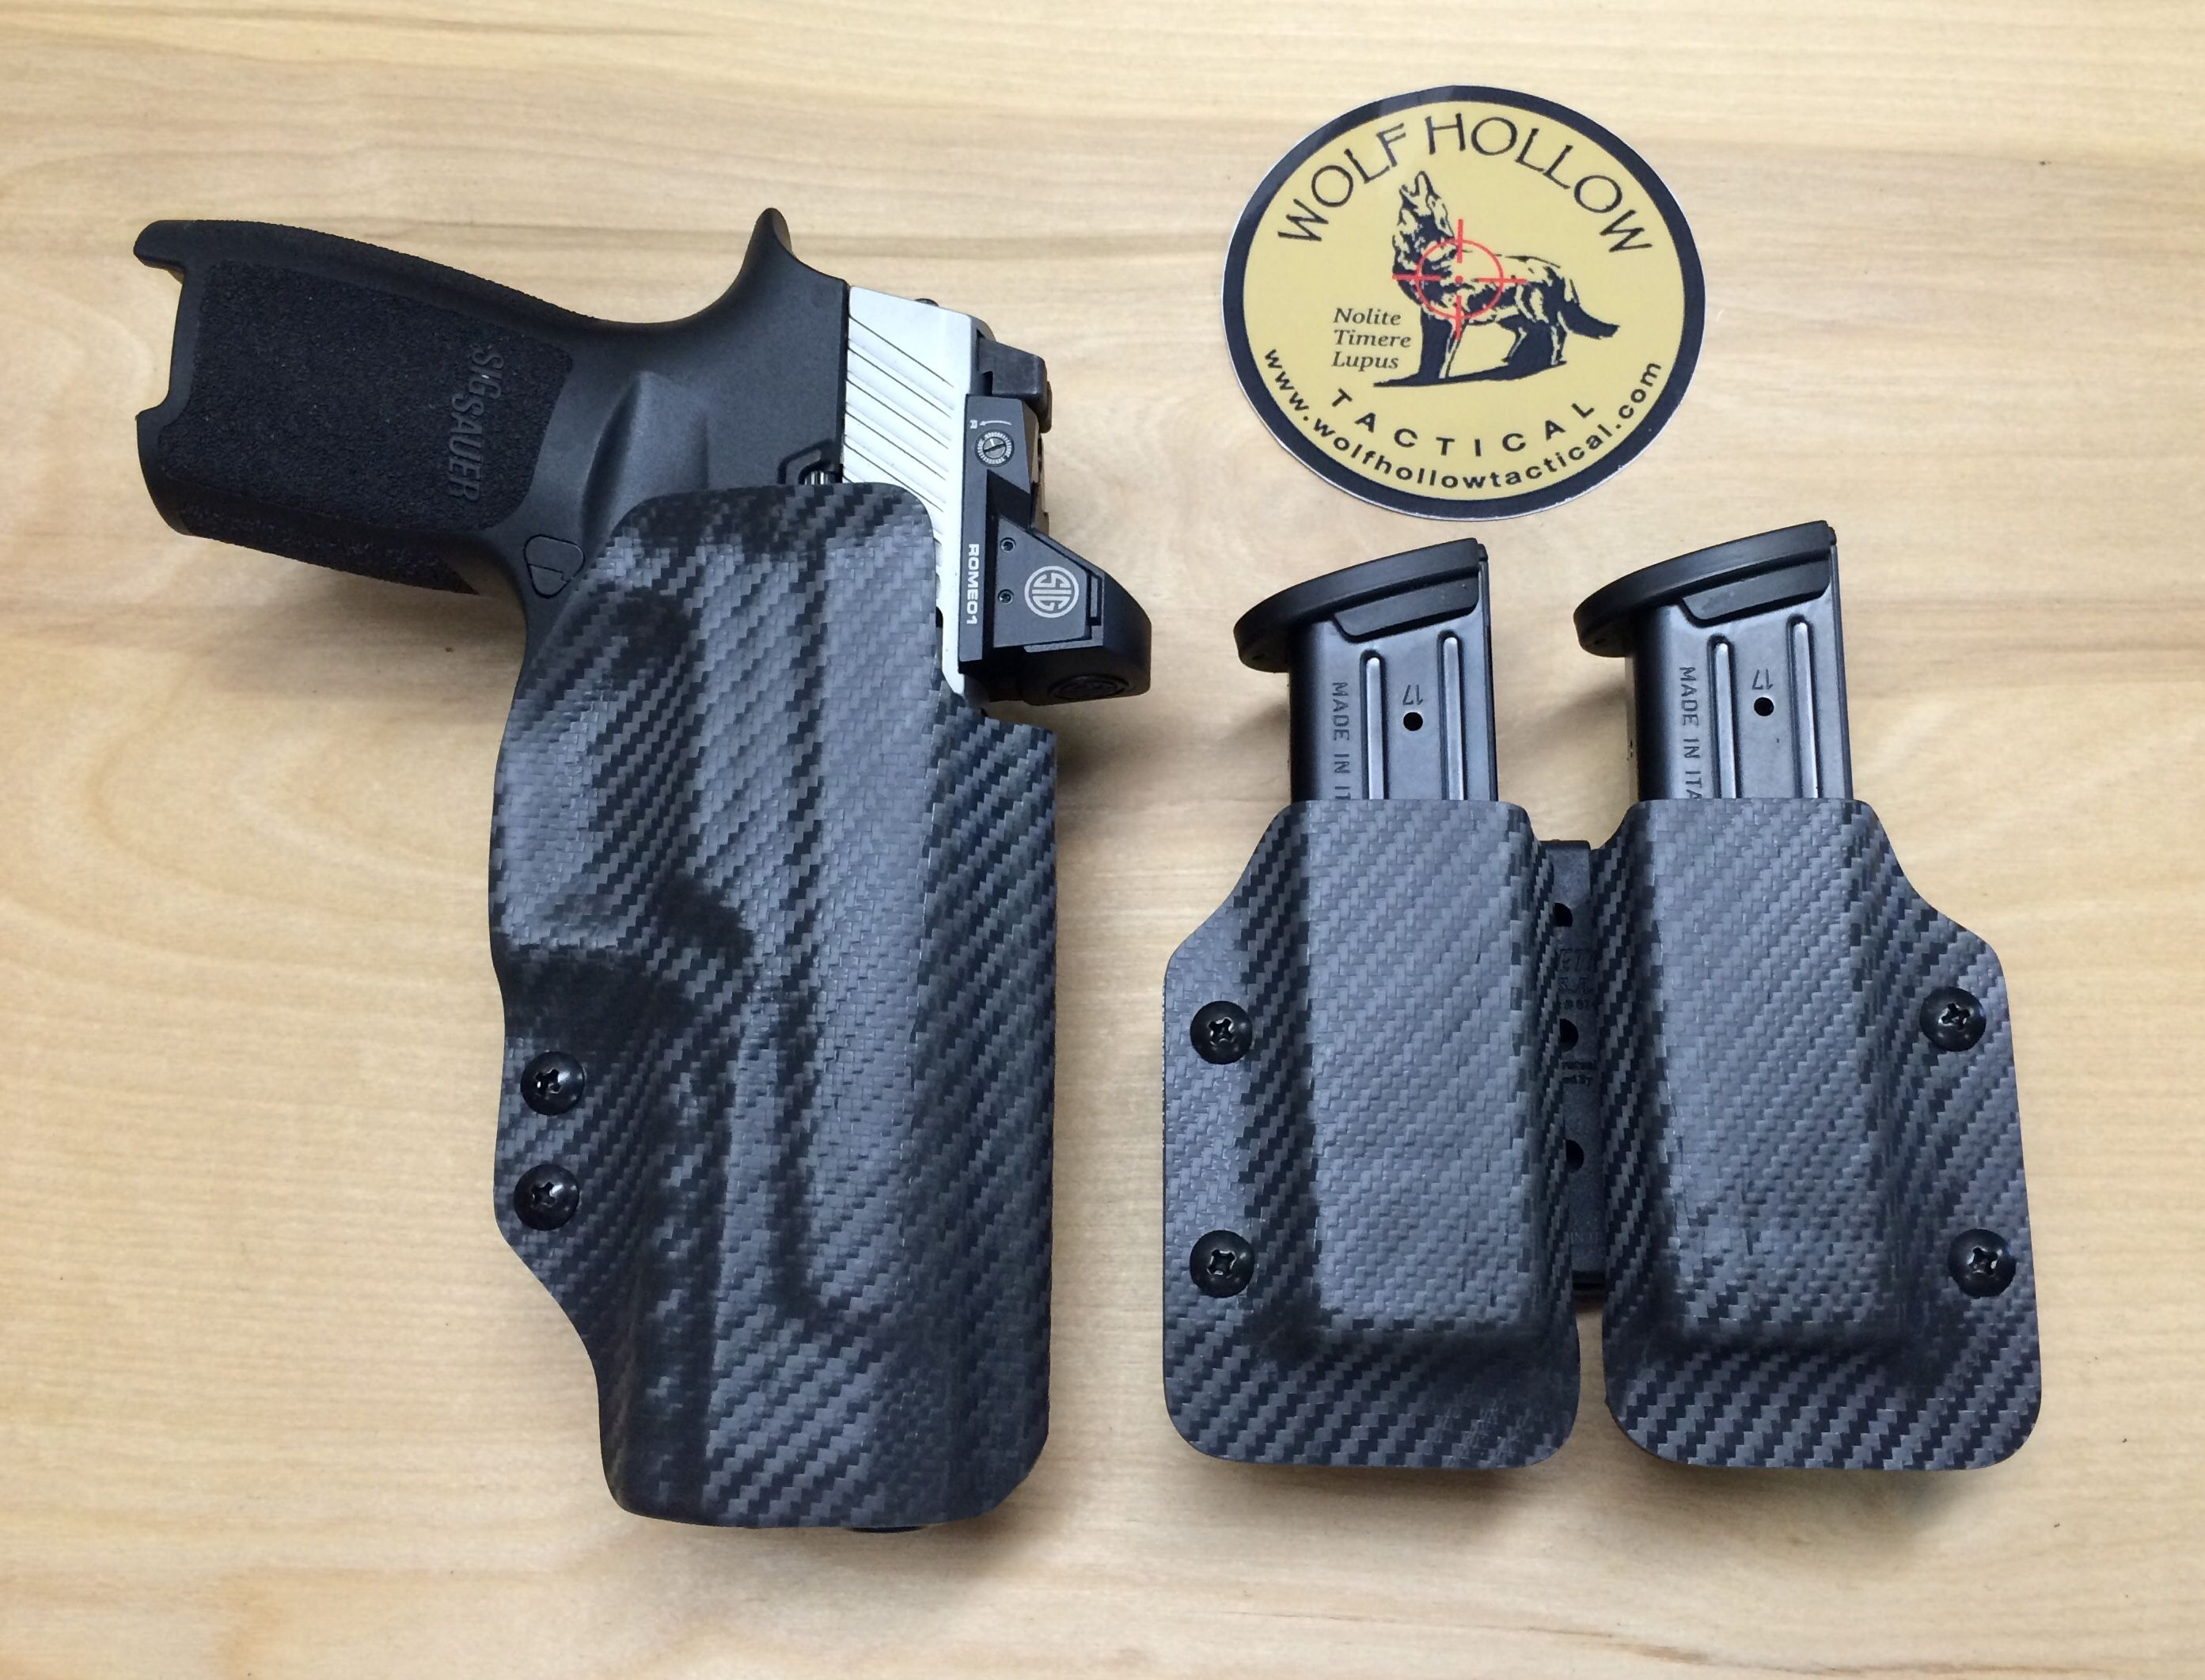 A custom holster for a Sig Sauer P320 with RMR  Dual mag